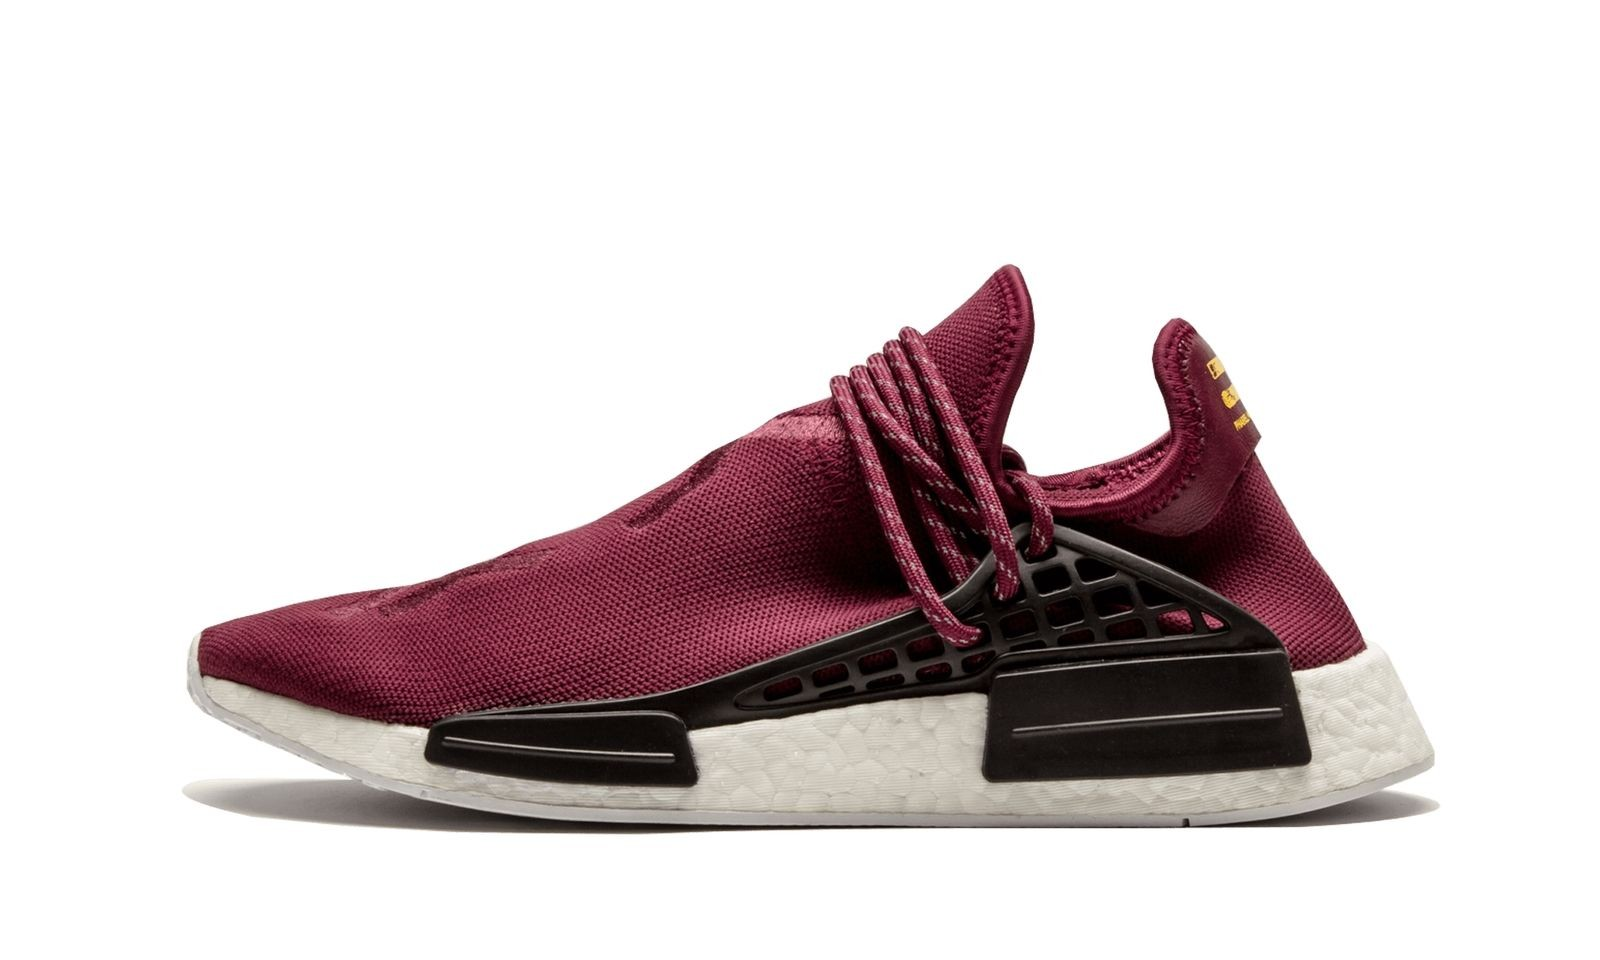 Pin by KaVon LeSean on Human Race NMD   Sneakers, Adidas